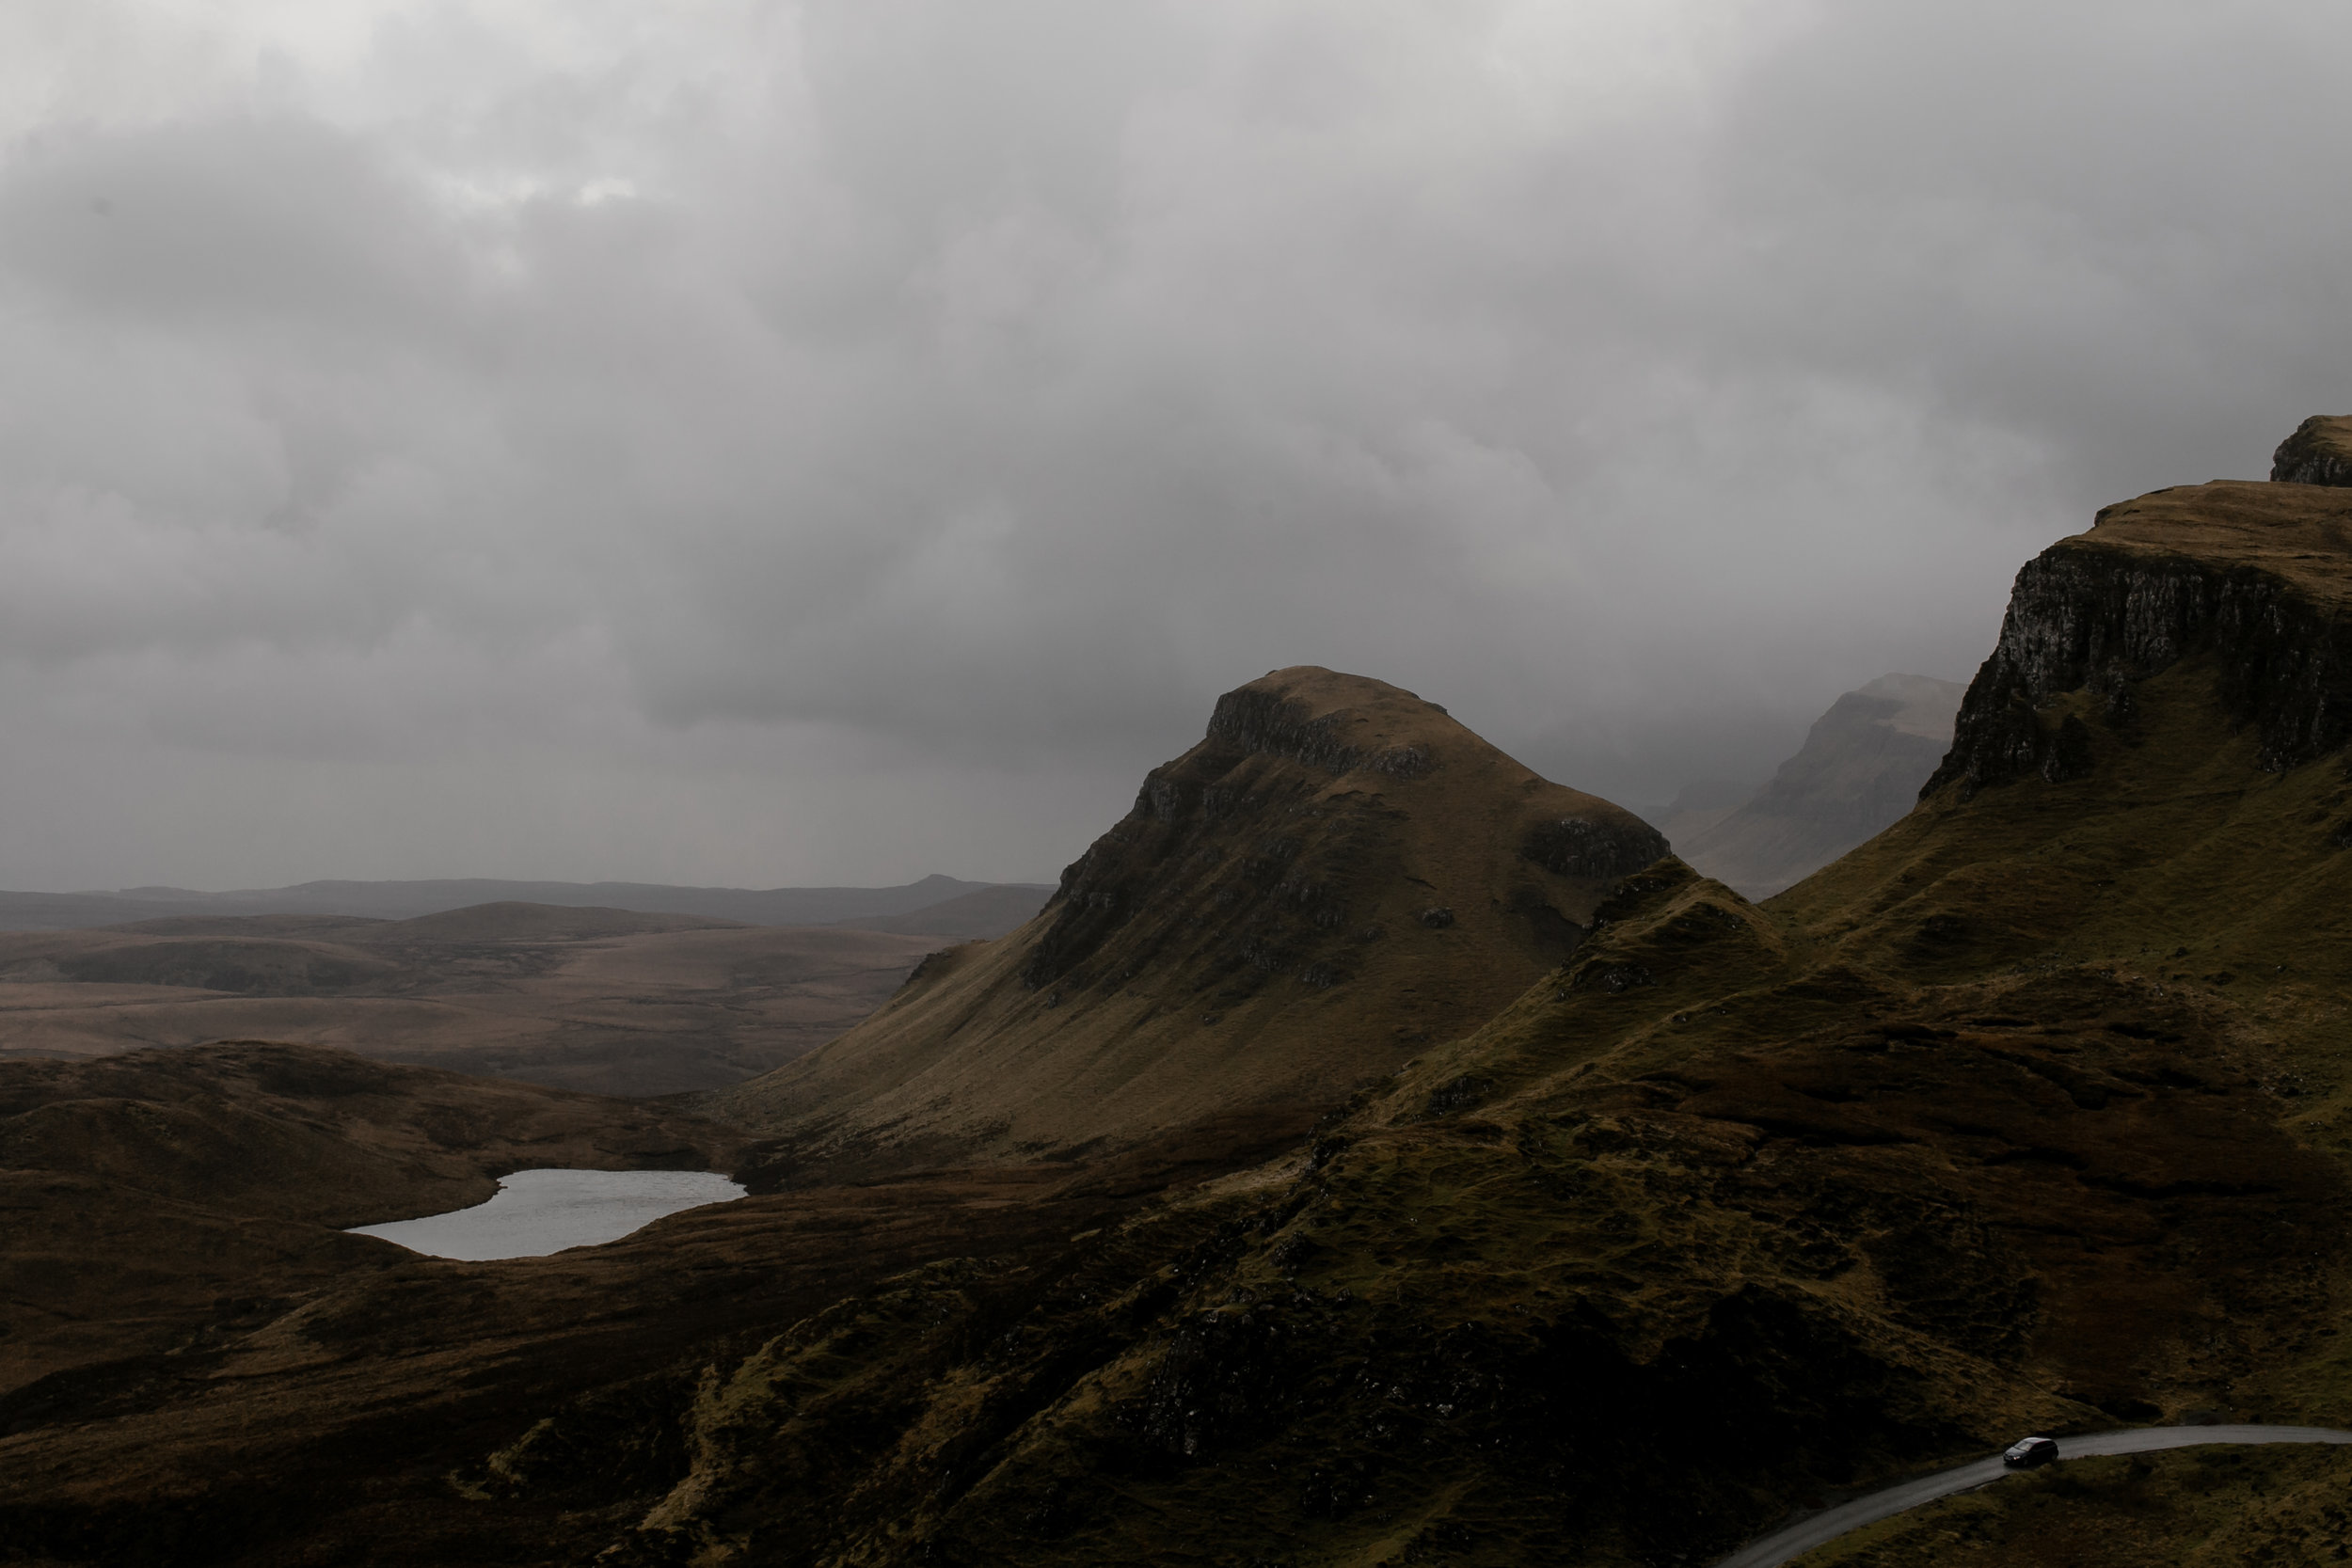 Isle-of-Skye-Scotland-Travel-Weekend-168.jpg